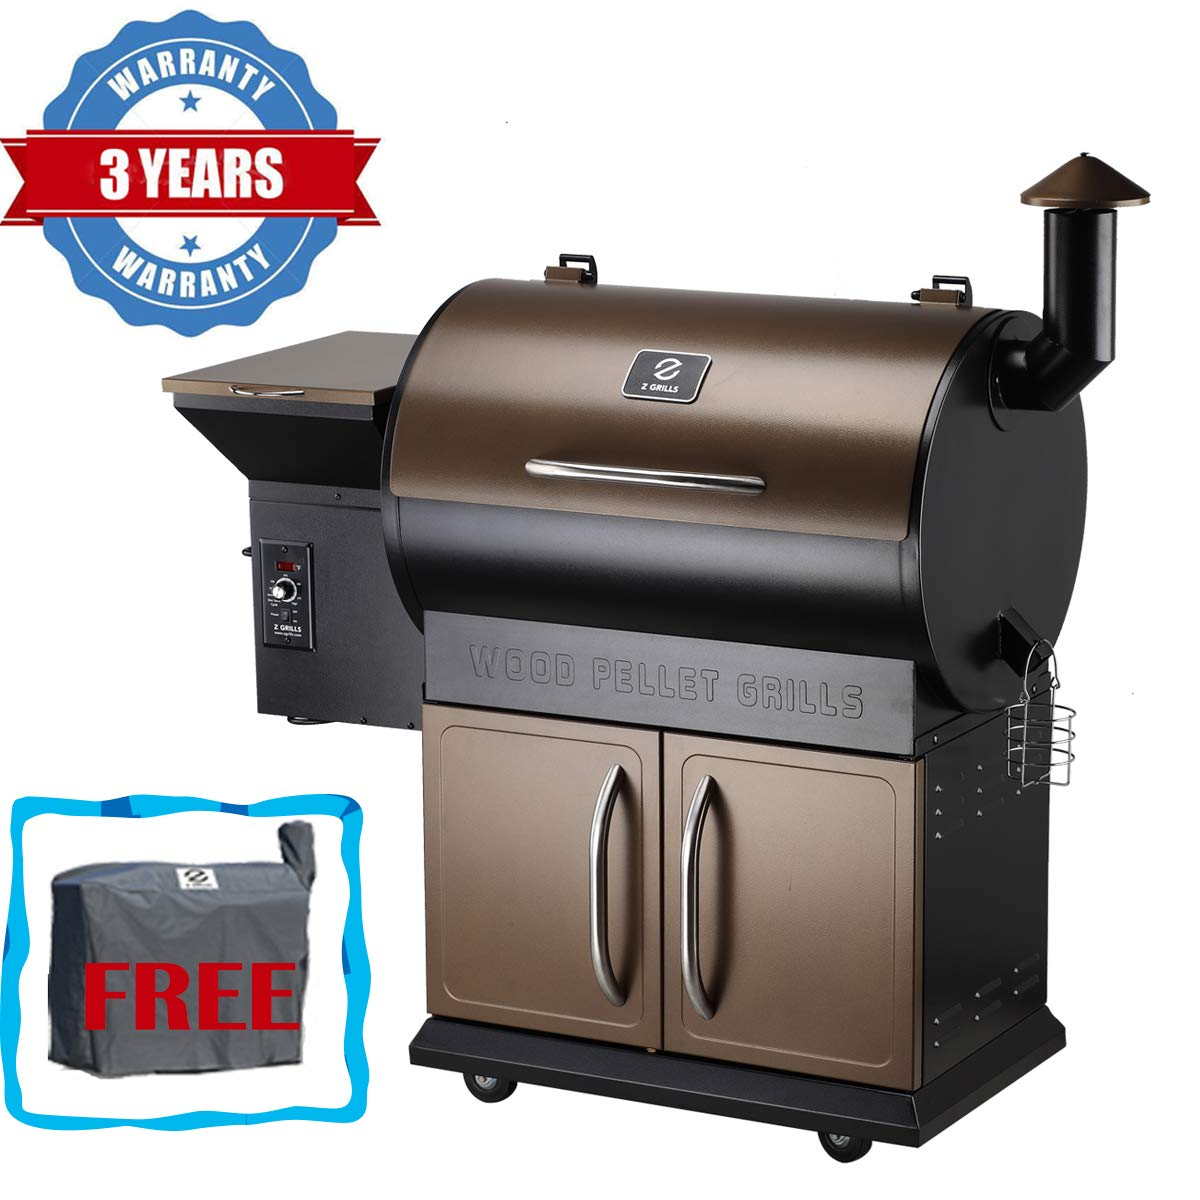 Z Grills Wood Pellet Grill & Smoker with Patio Cover,700 Cooking Area 7 in 1- Grill, Smoke, Bake, Roast, Braise and BBQ with Electric Digital Controls for Outdoor (Grill Cover included) by Z GRILLS